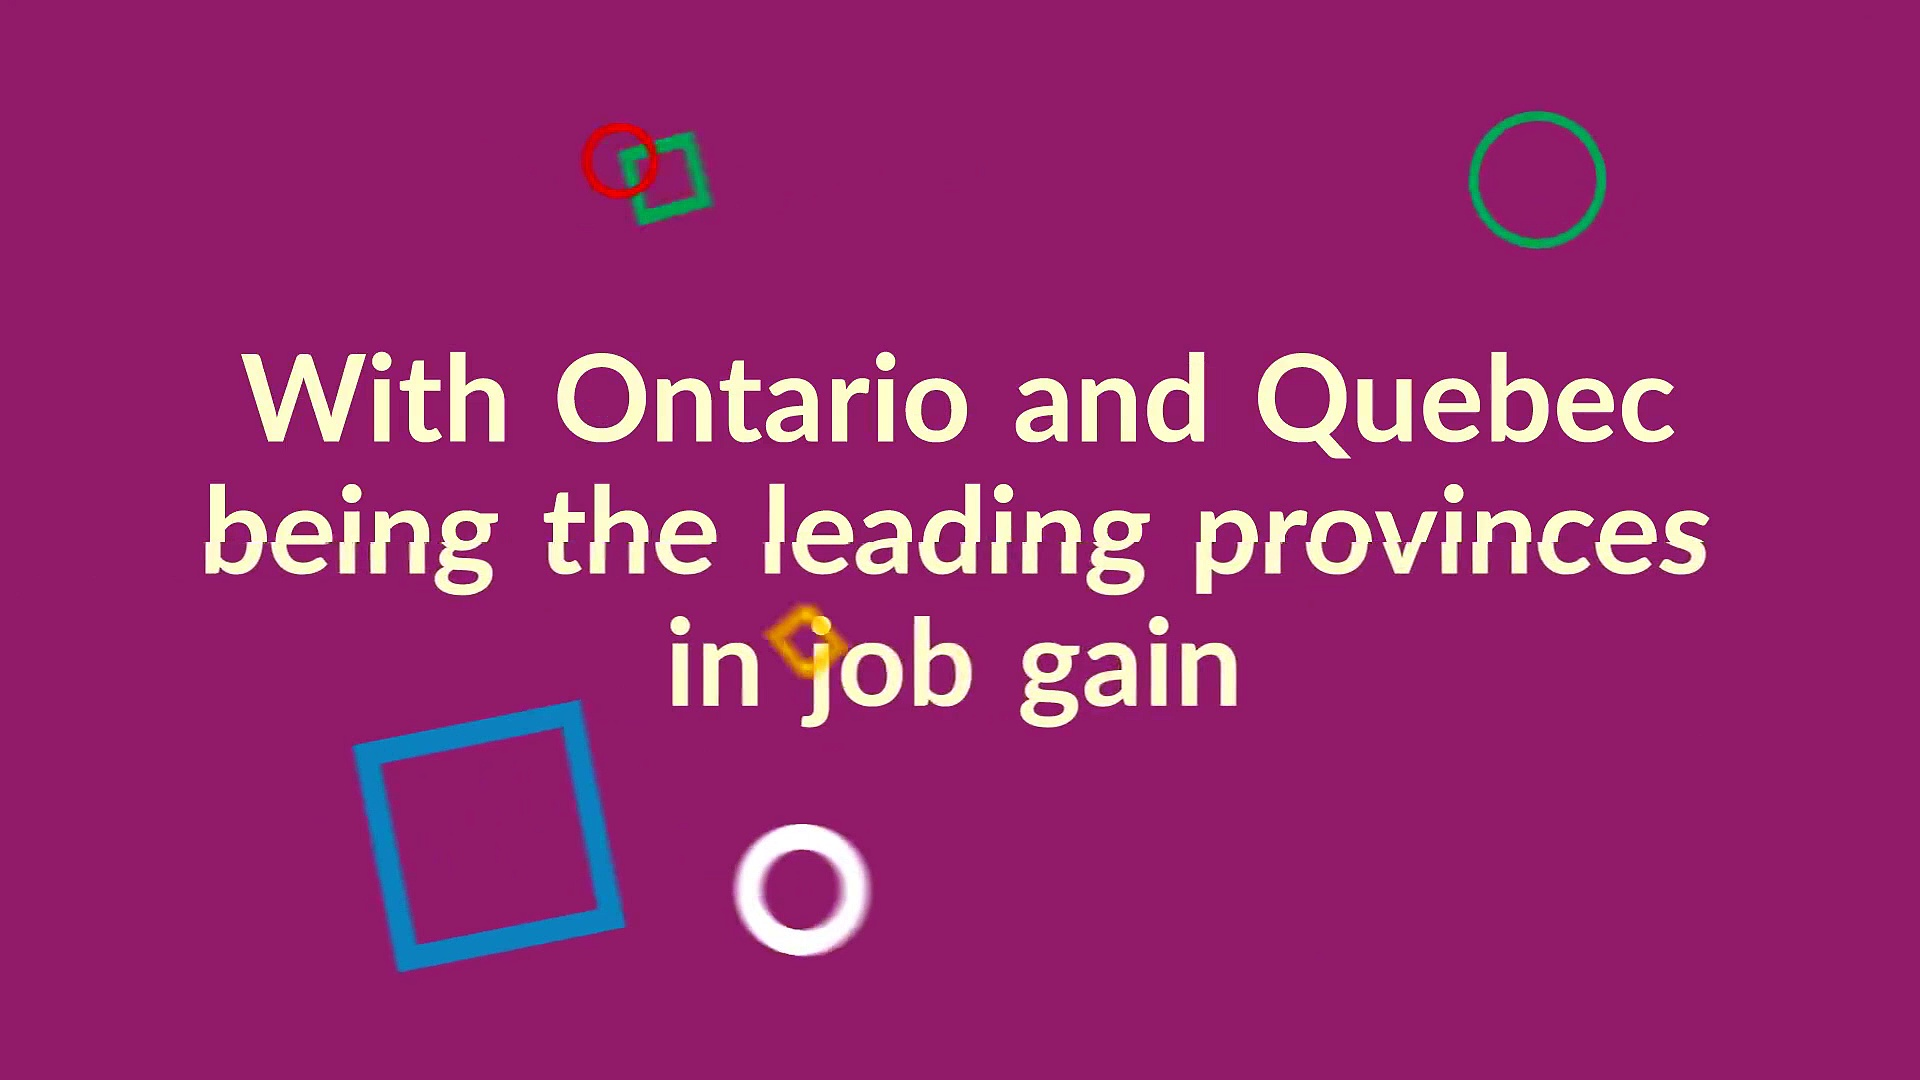 With Employment and Job Openings Surging in Ontario, HR Departments Expected to Face Hiring Challenges – Security Smart Systems Inc.